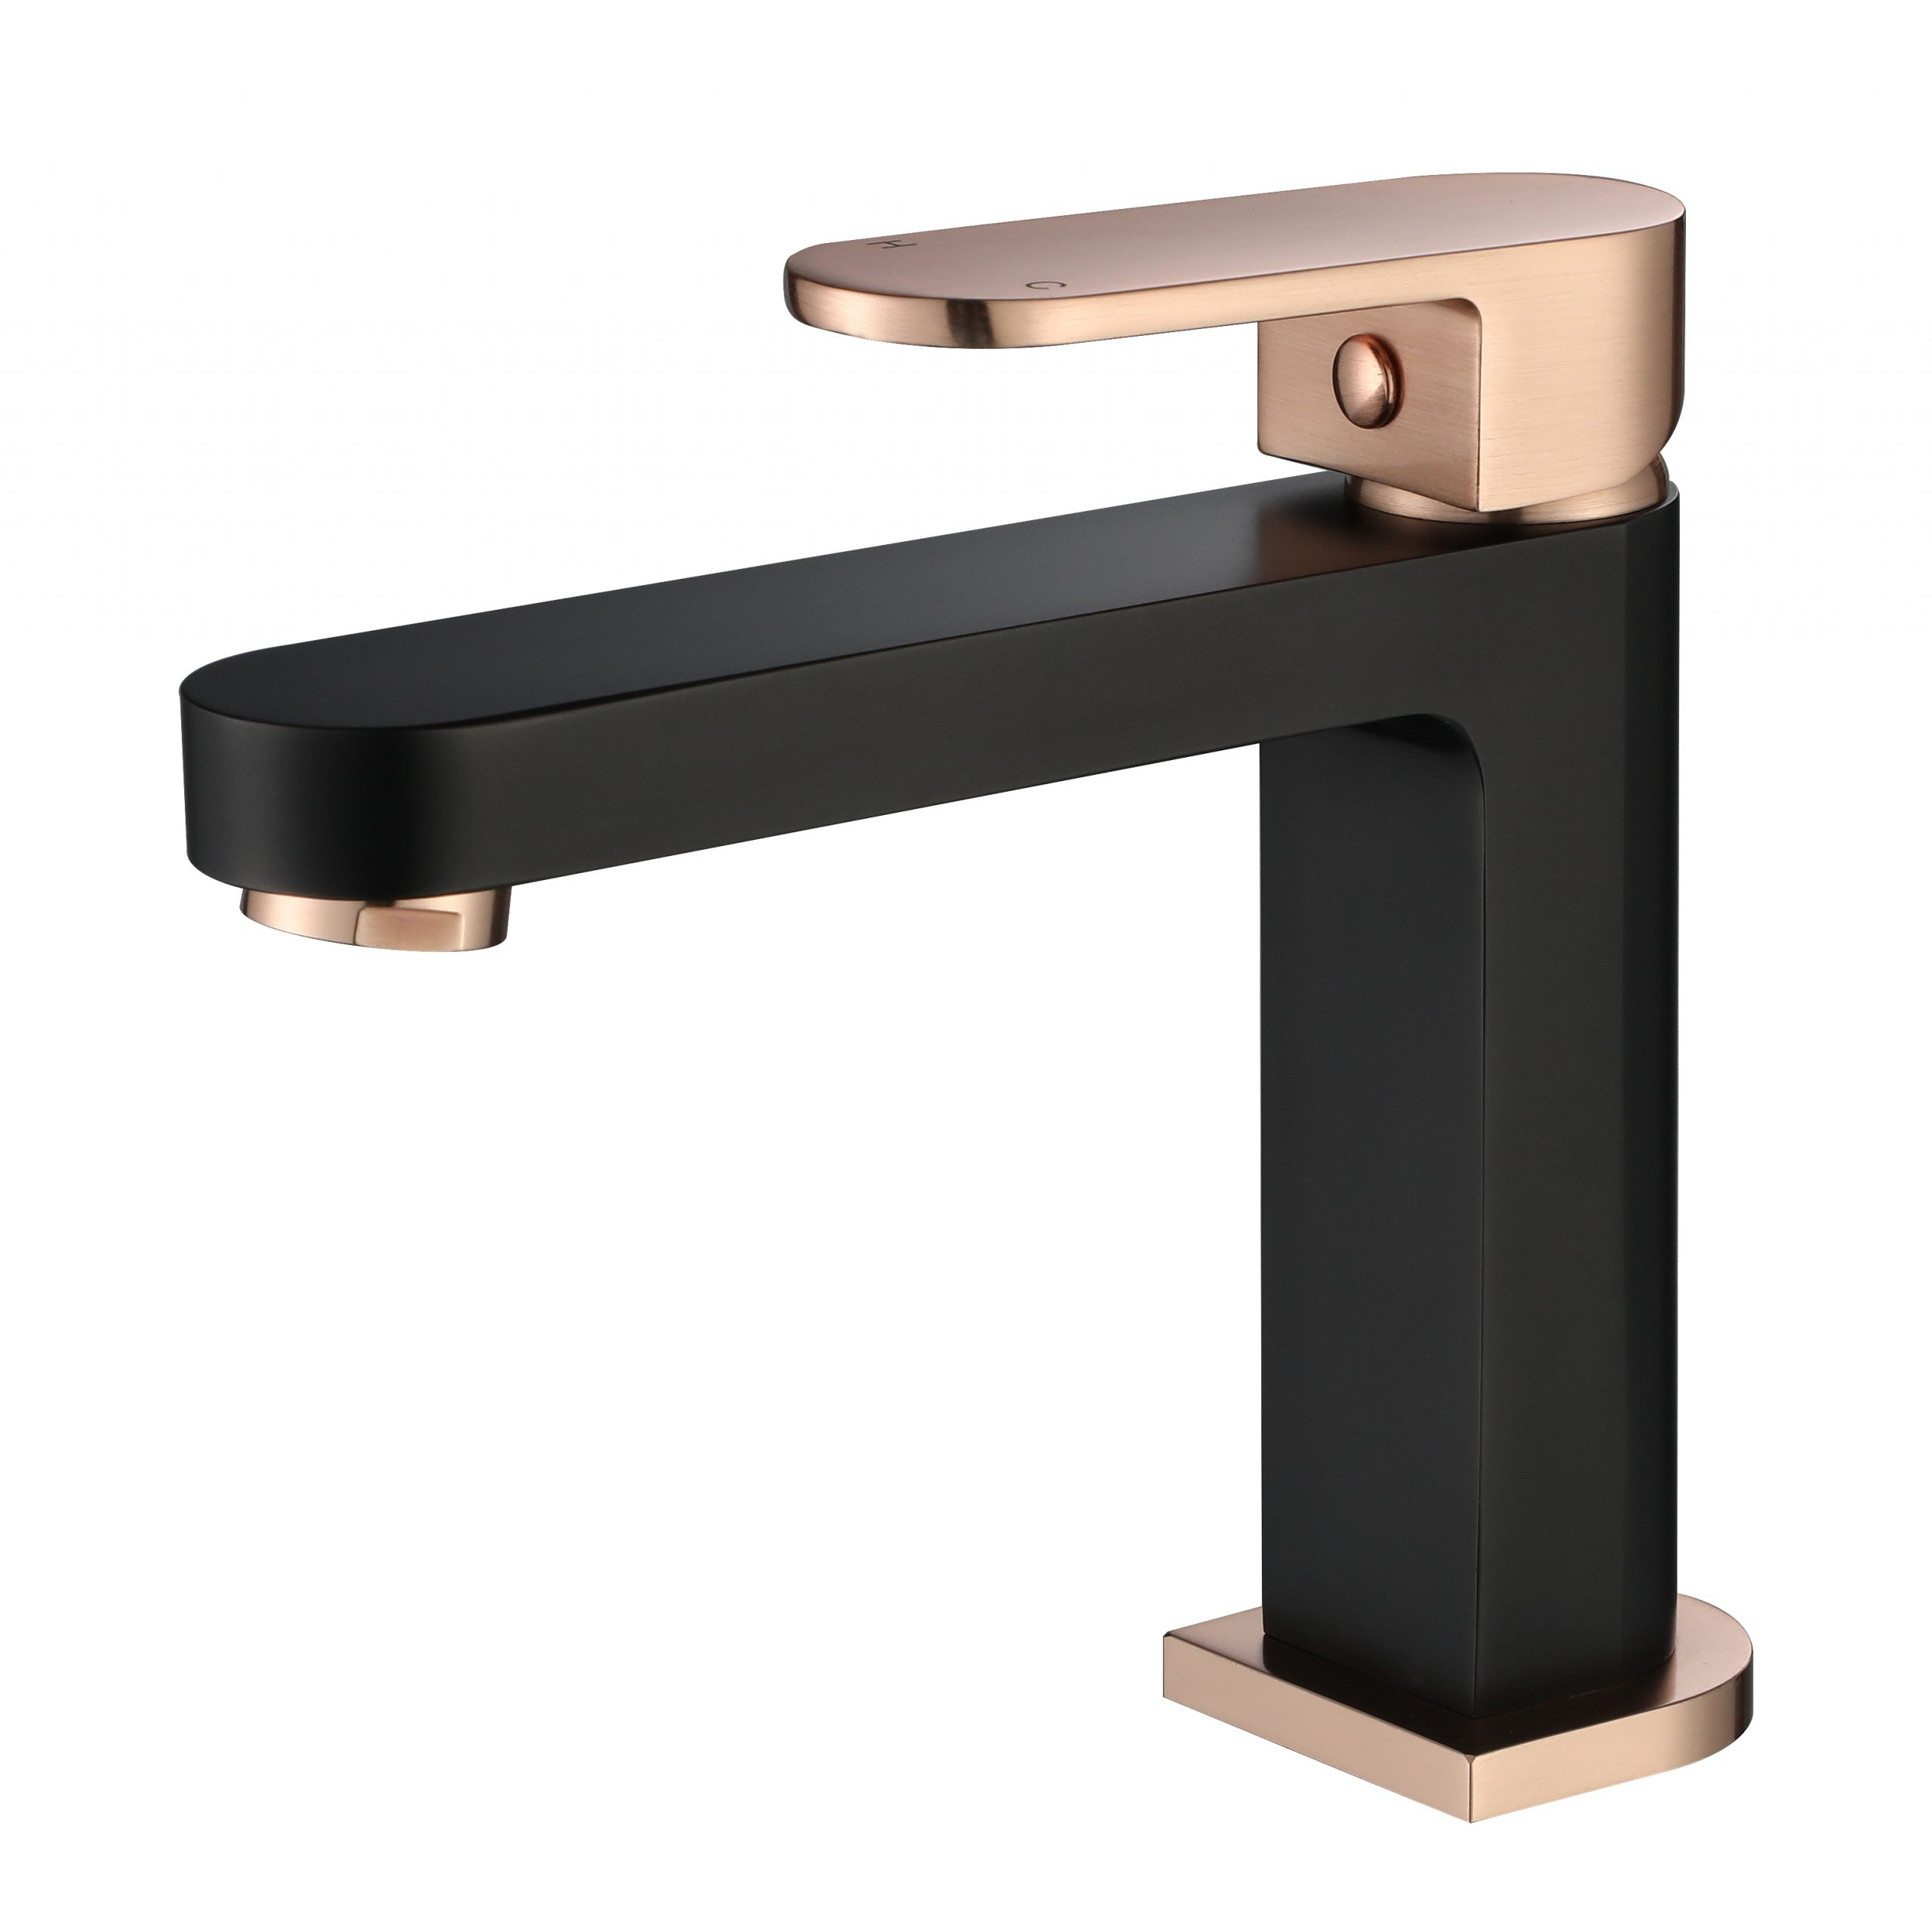 Eva Mini Basin Mixer-Matt Black & Flemish Copper